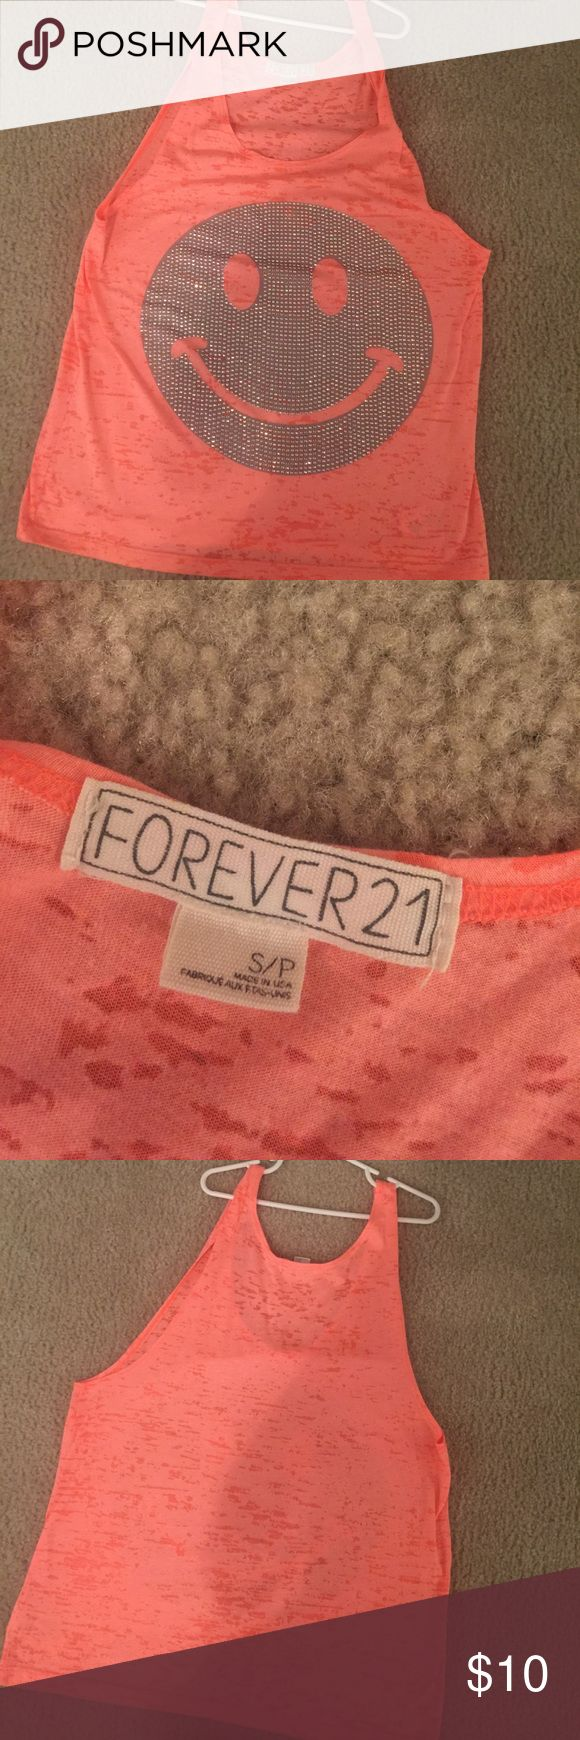 Forever 21 Tank Top Like new Forever 21 Tank Top. Bright orange color with smiley face made up of diamonds. All diamonds are intact. Only worn a couple of times, great condition! Size small. Comes from pet free and smoke free home. Forever 21 Tops Tank Tops